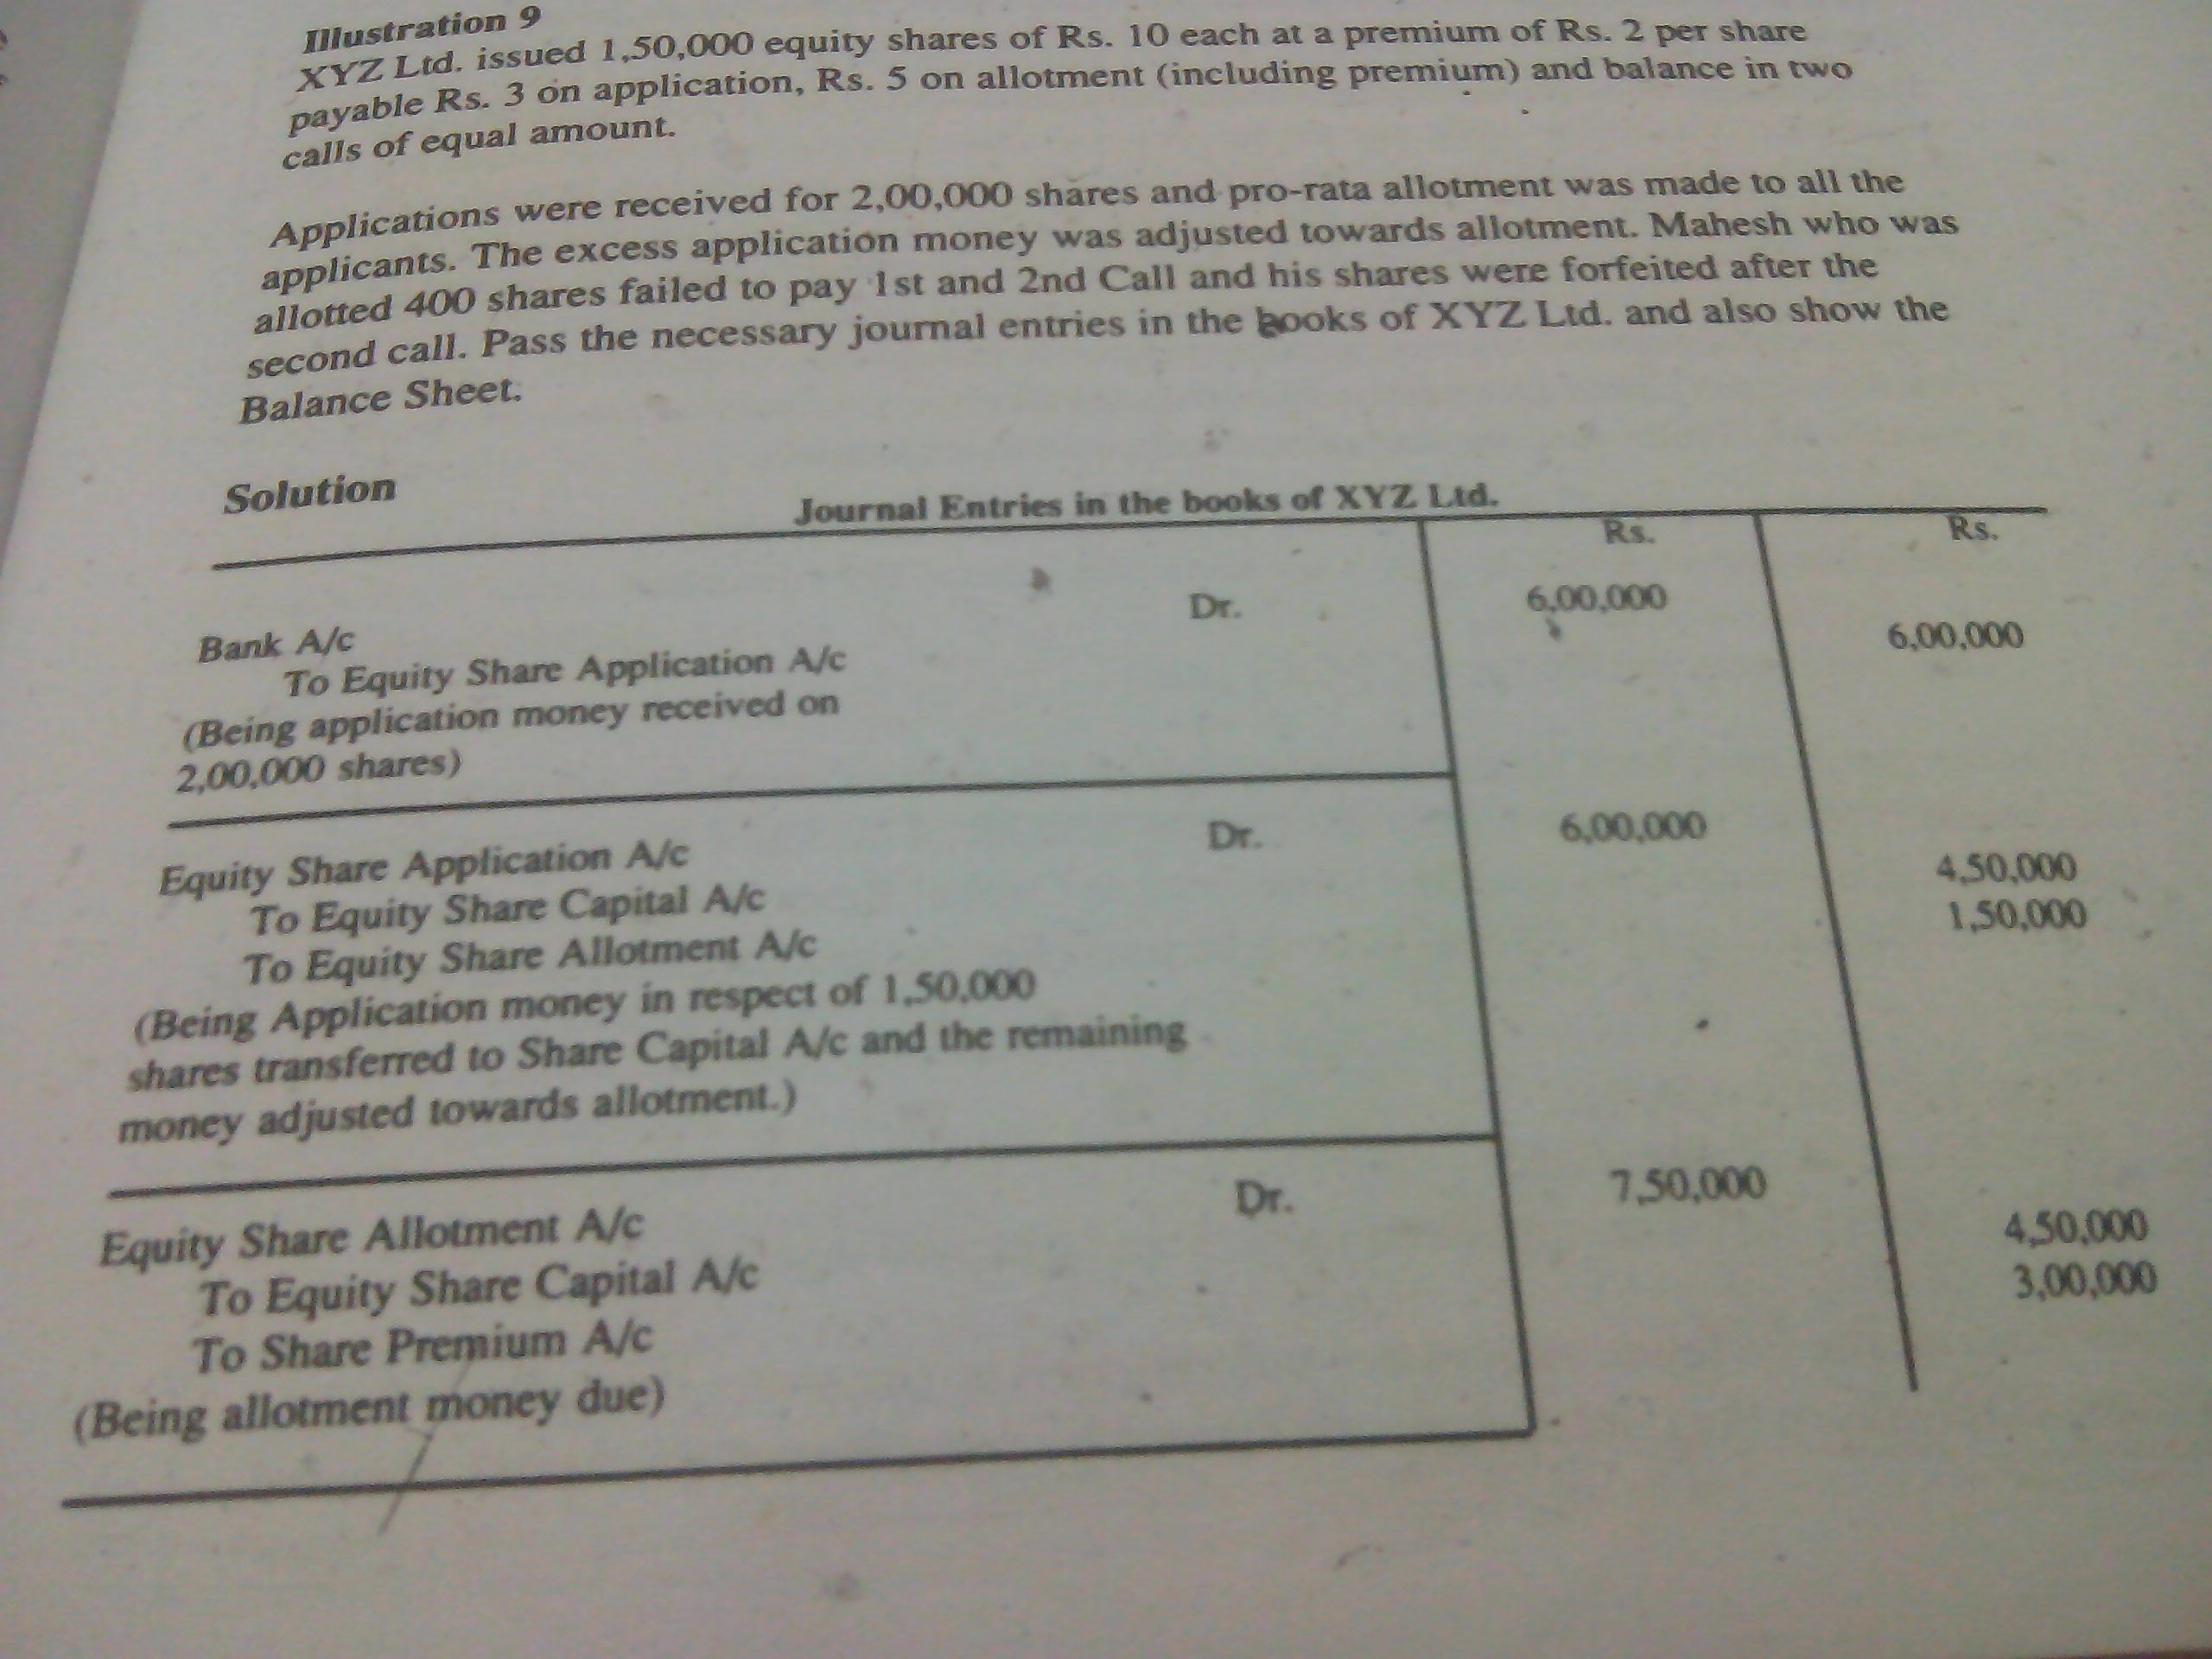 application for allotment of shares